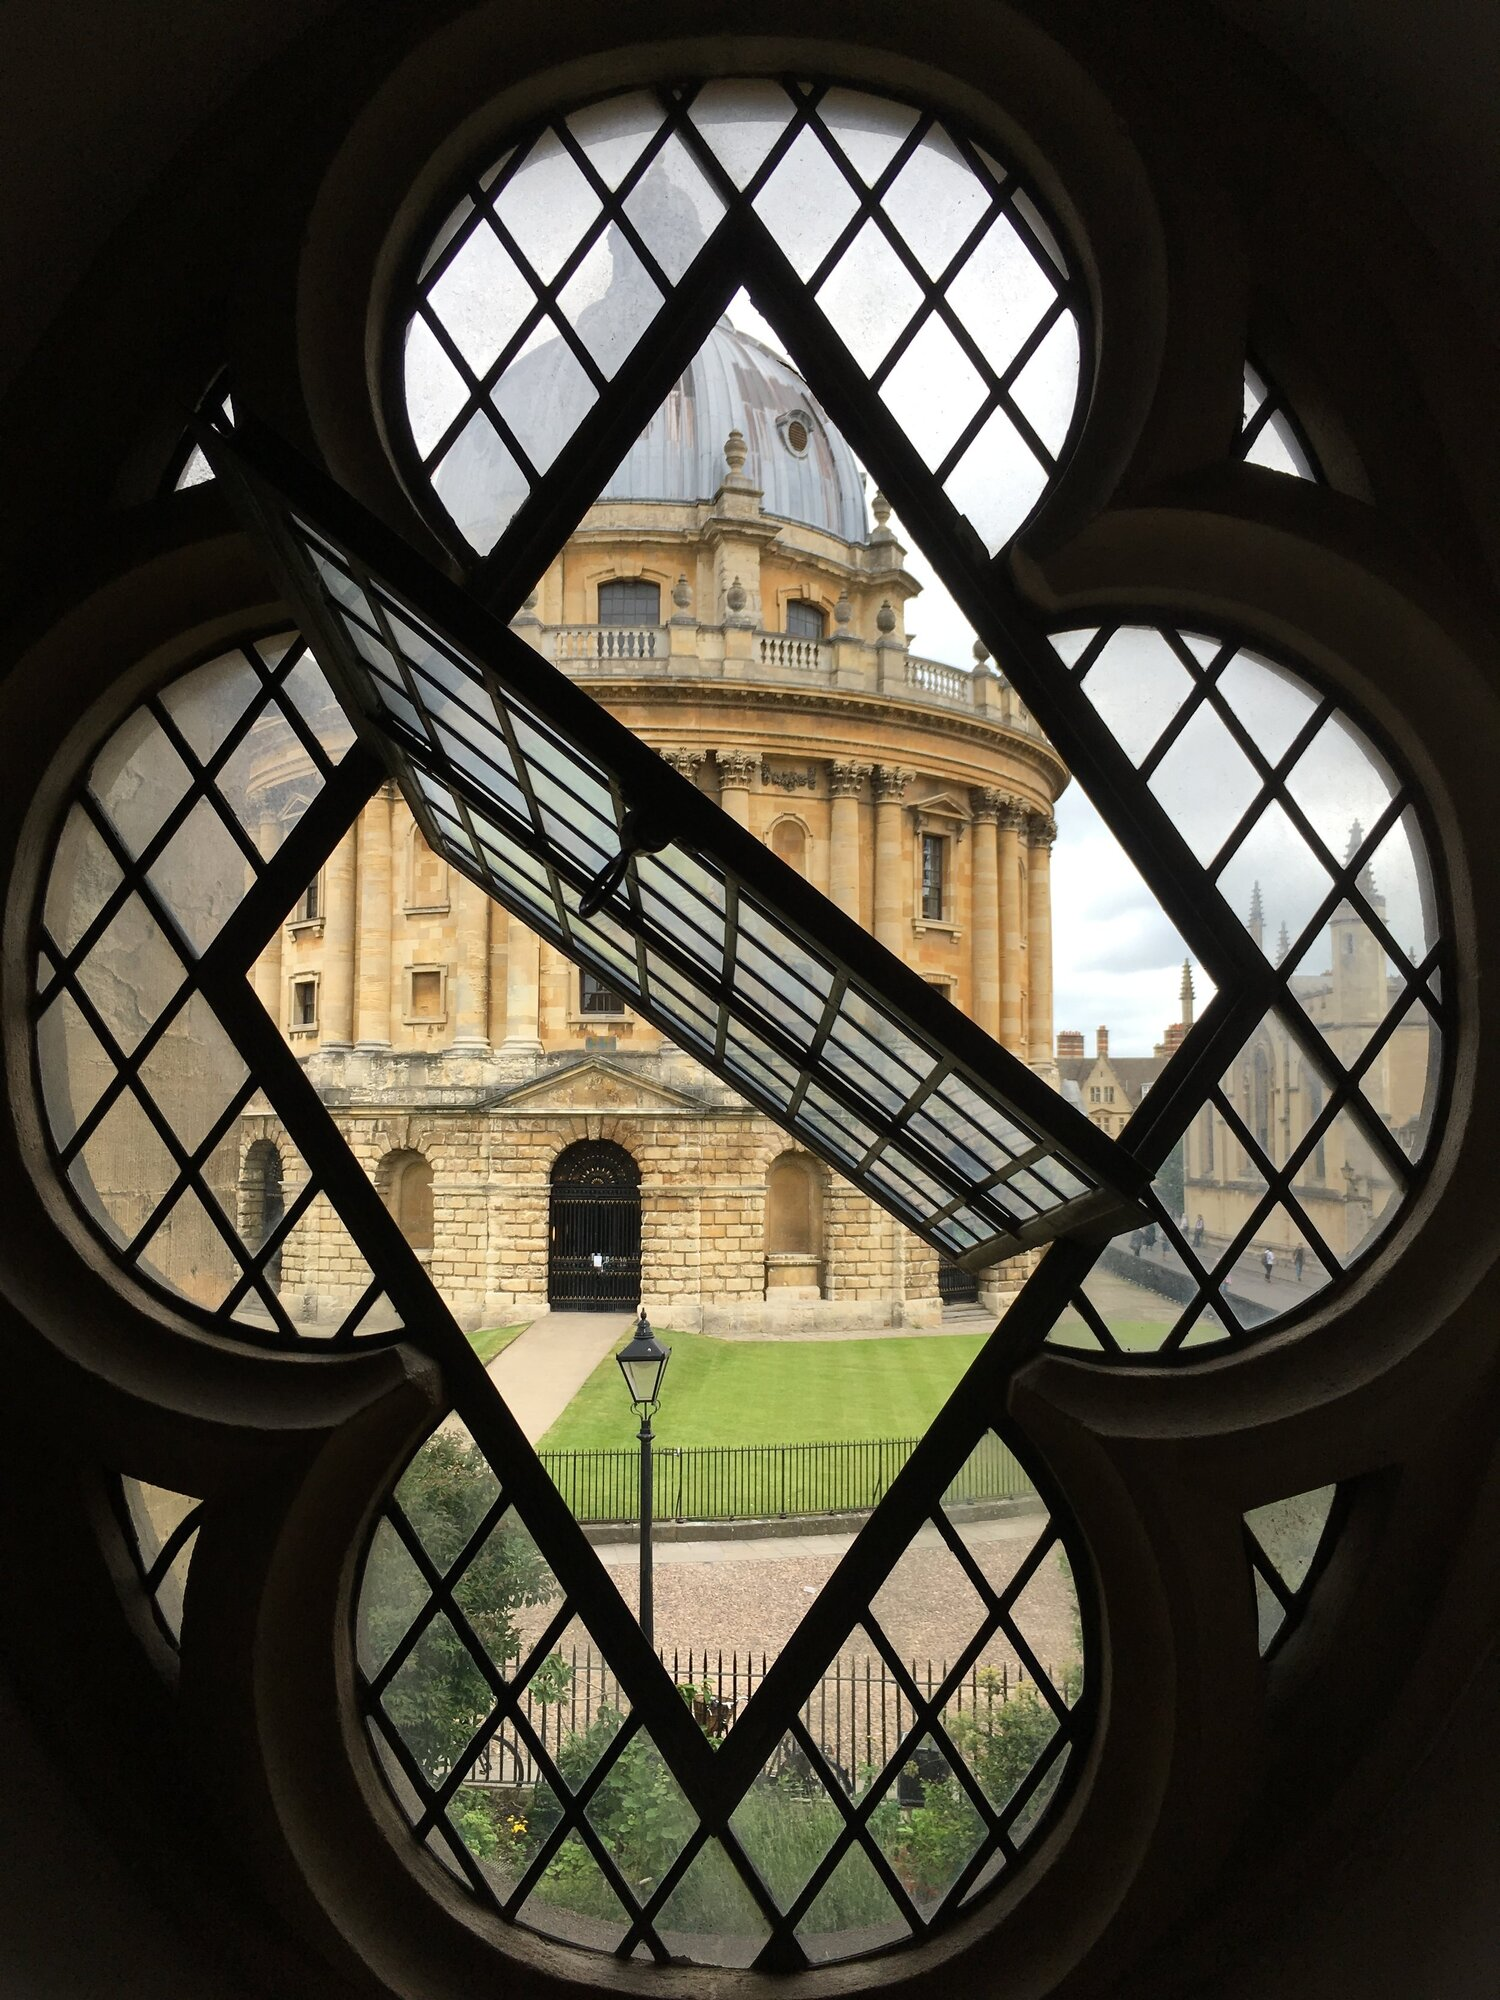 The Oxford Vacation Guide